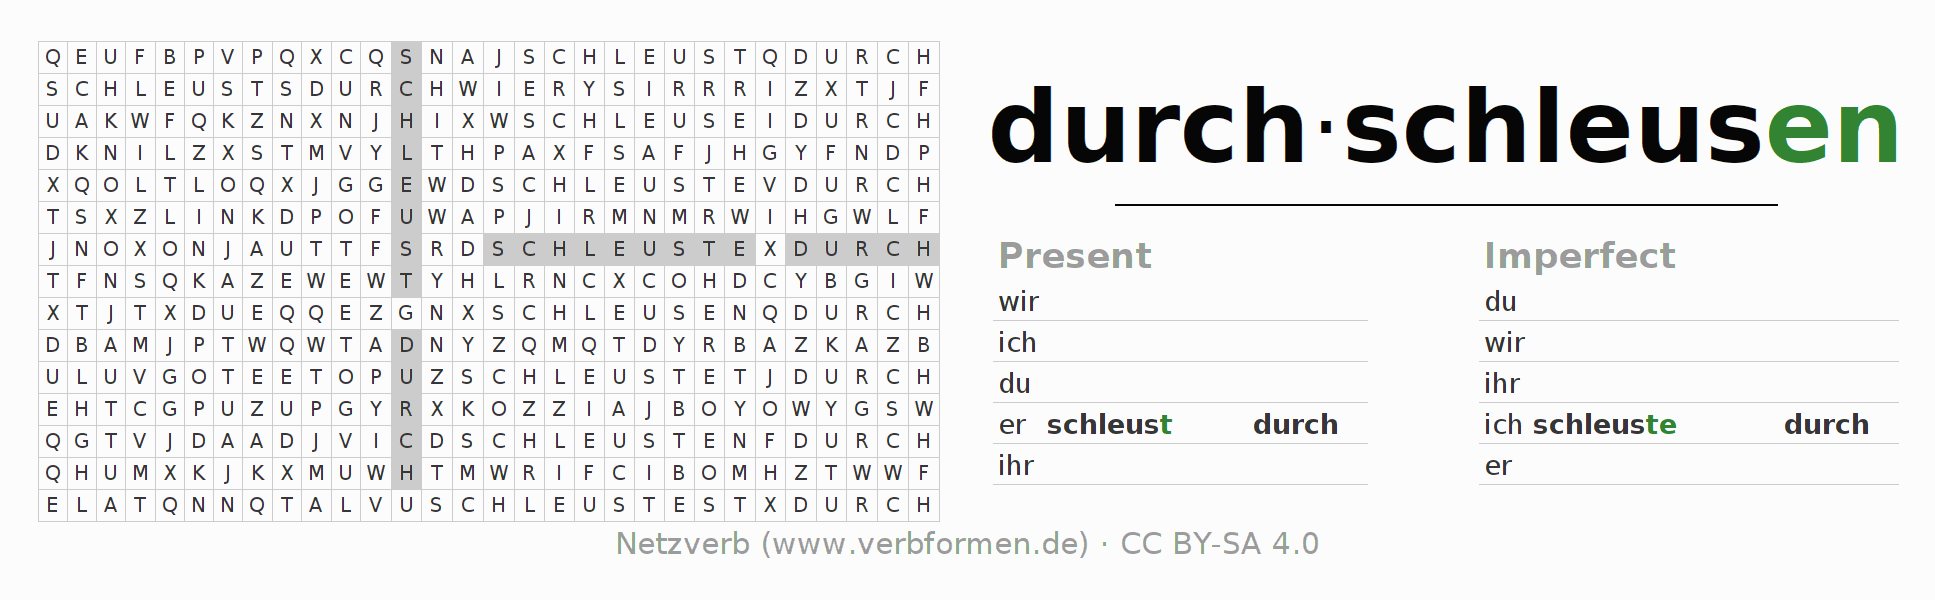 Word search puzzle for the conjugation of the verb durchschleusen